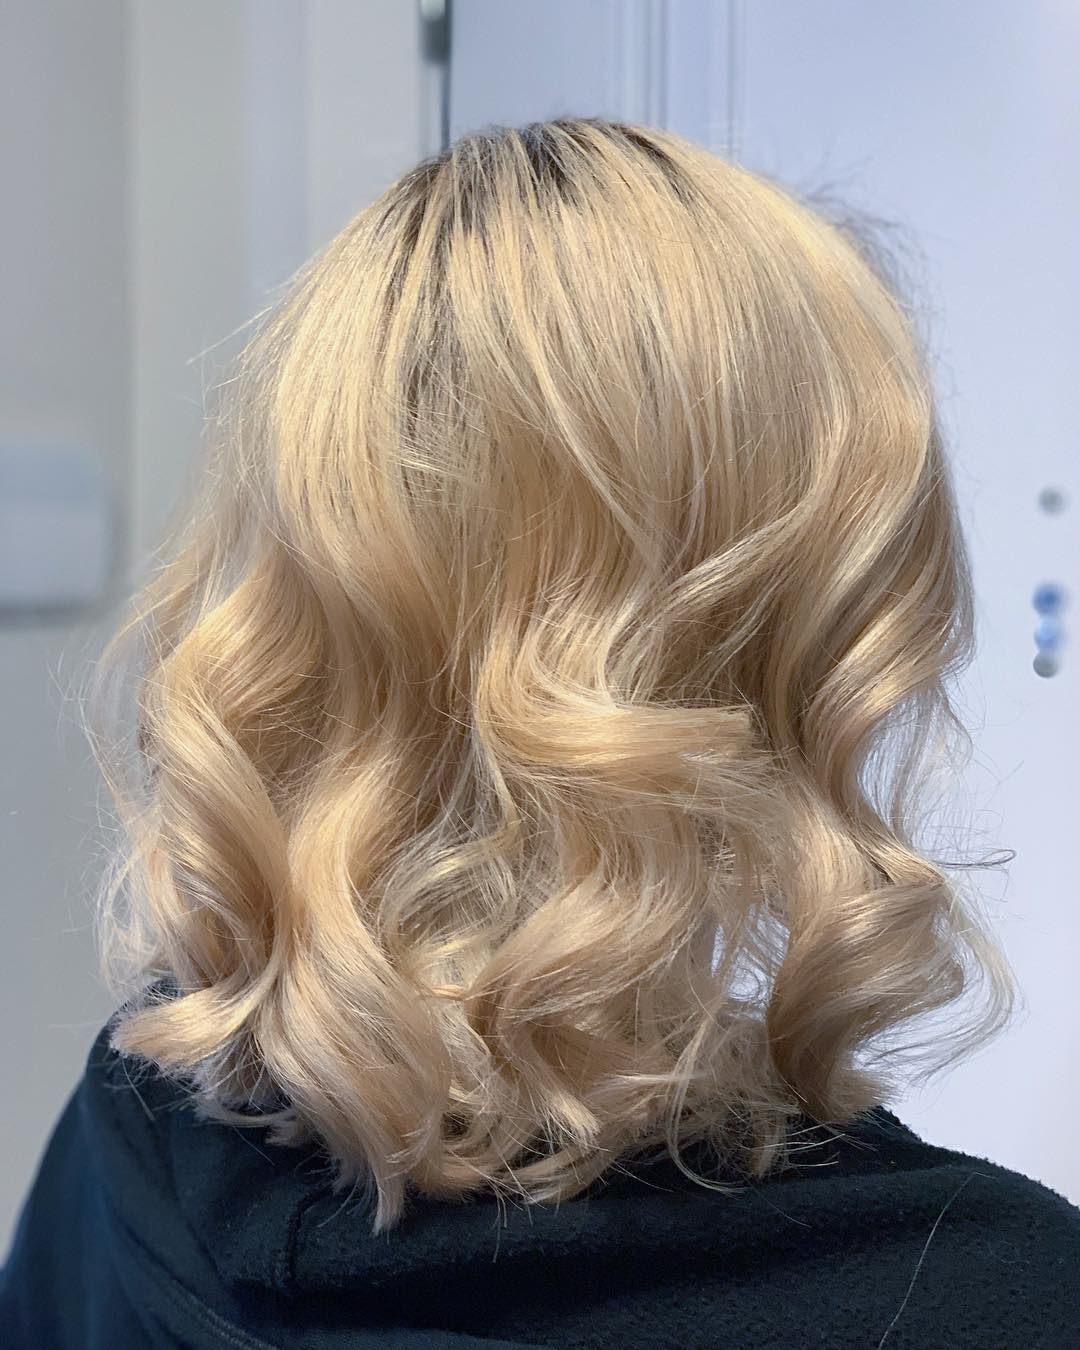 New The 10 Best Hairstyles Today With Pictures Pearly Ash Blonde Swipeforbeforeandafter Beauty B Blonde Balayage Cool Hairstyles Hair Today